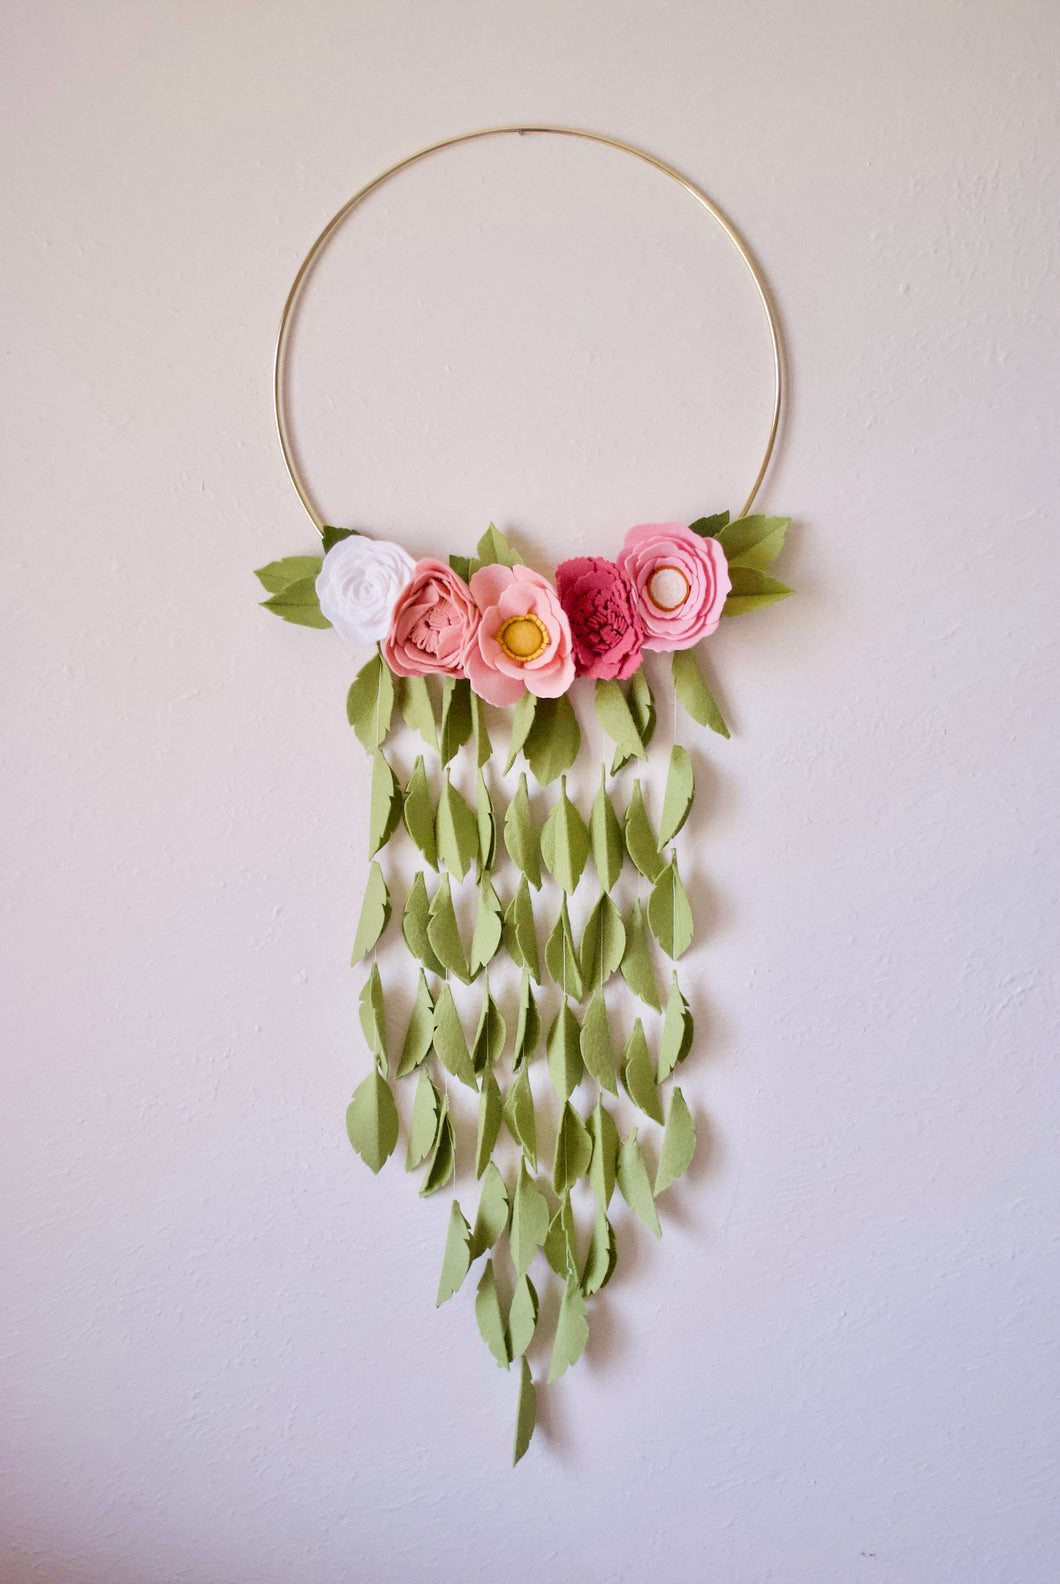 Handmade Rose Felt Floral Gold Hoop Wreath